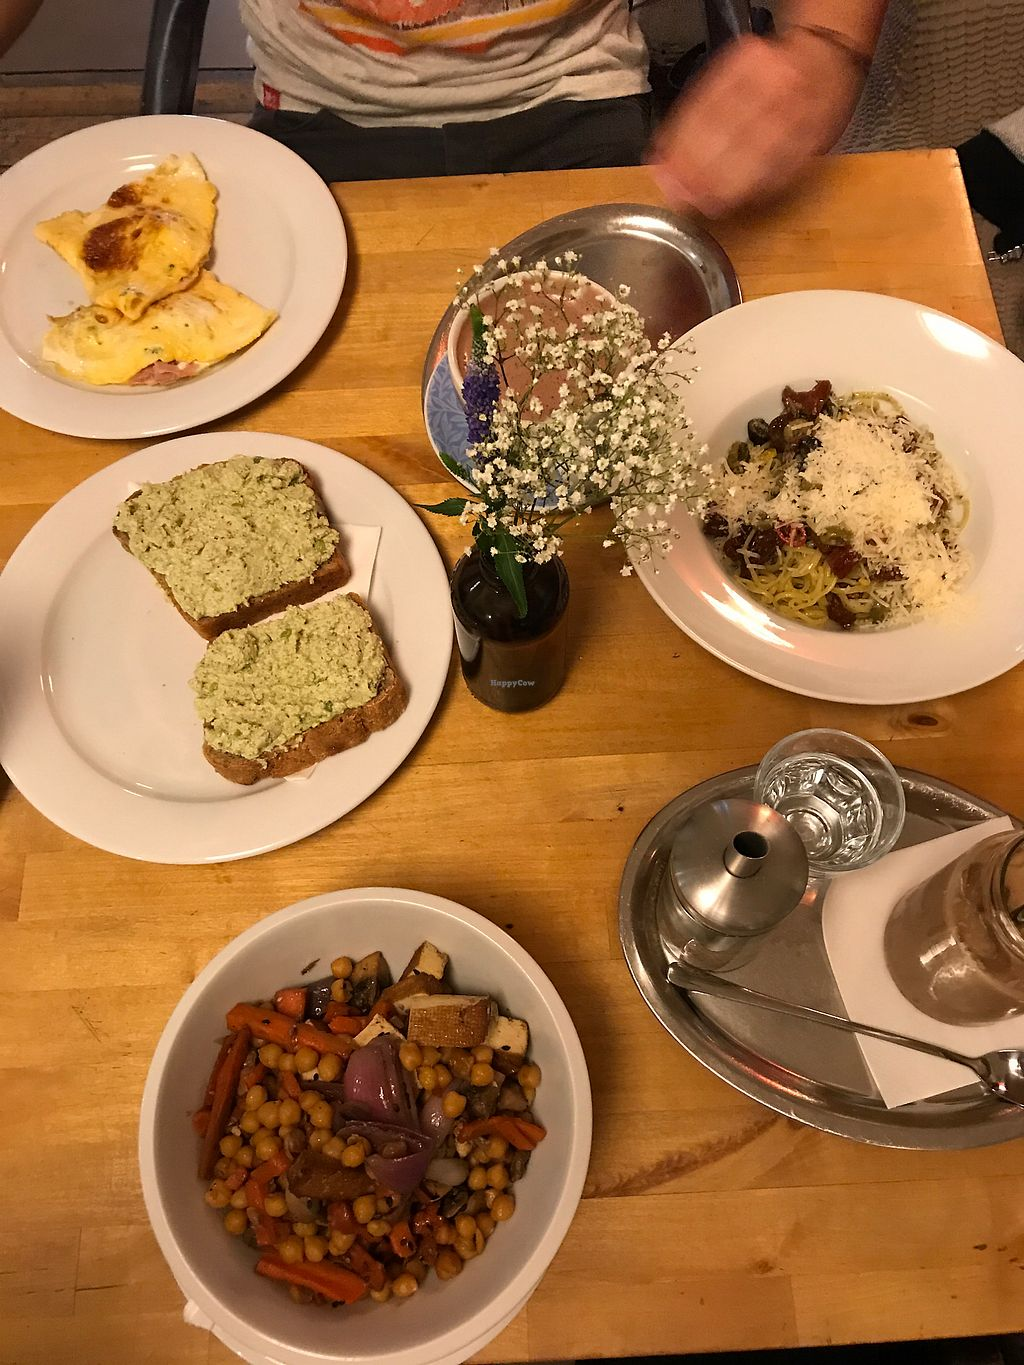 """Photo of Sicily Cafe  by <a href=""""/members/profile/megcanical"""">megcanical</a> <br/>Our lunch spread <br/> March 12, 2018  - <a href='/contact/abuse/image/40071/369684'>Report</a>"""